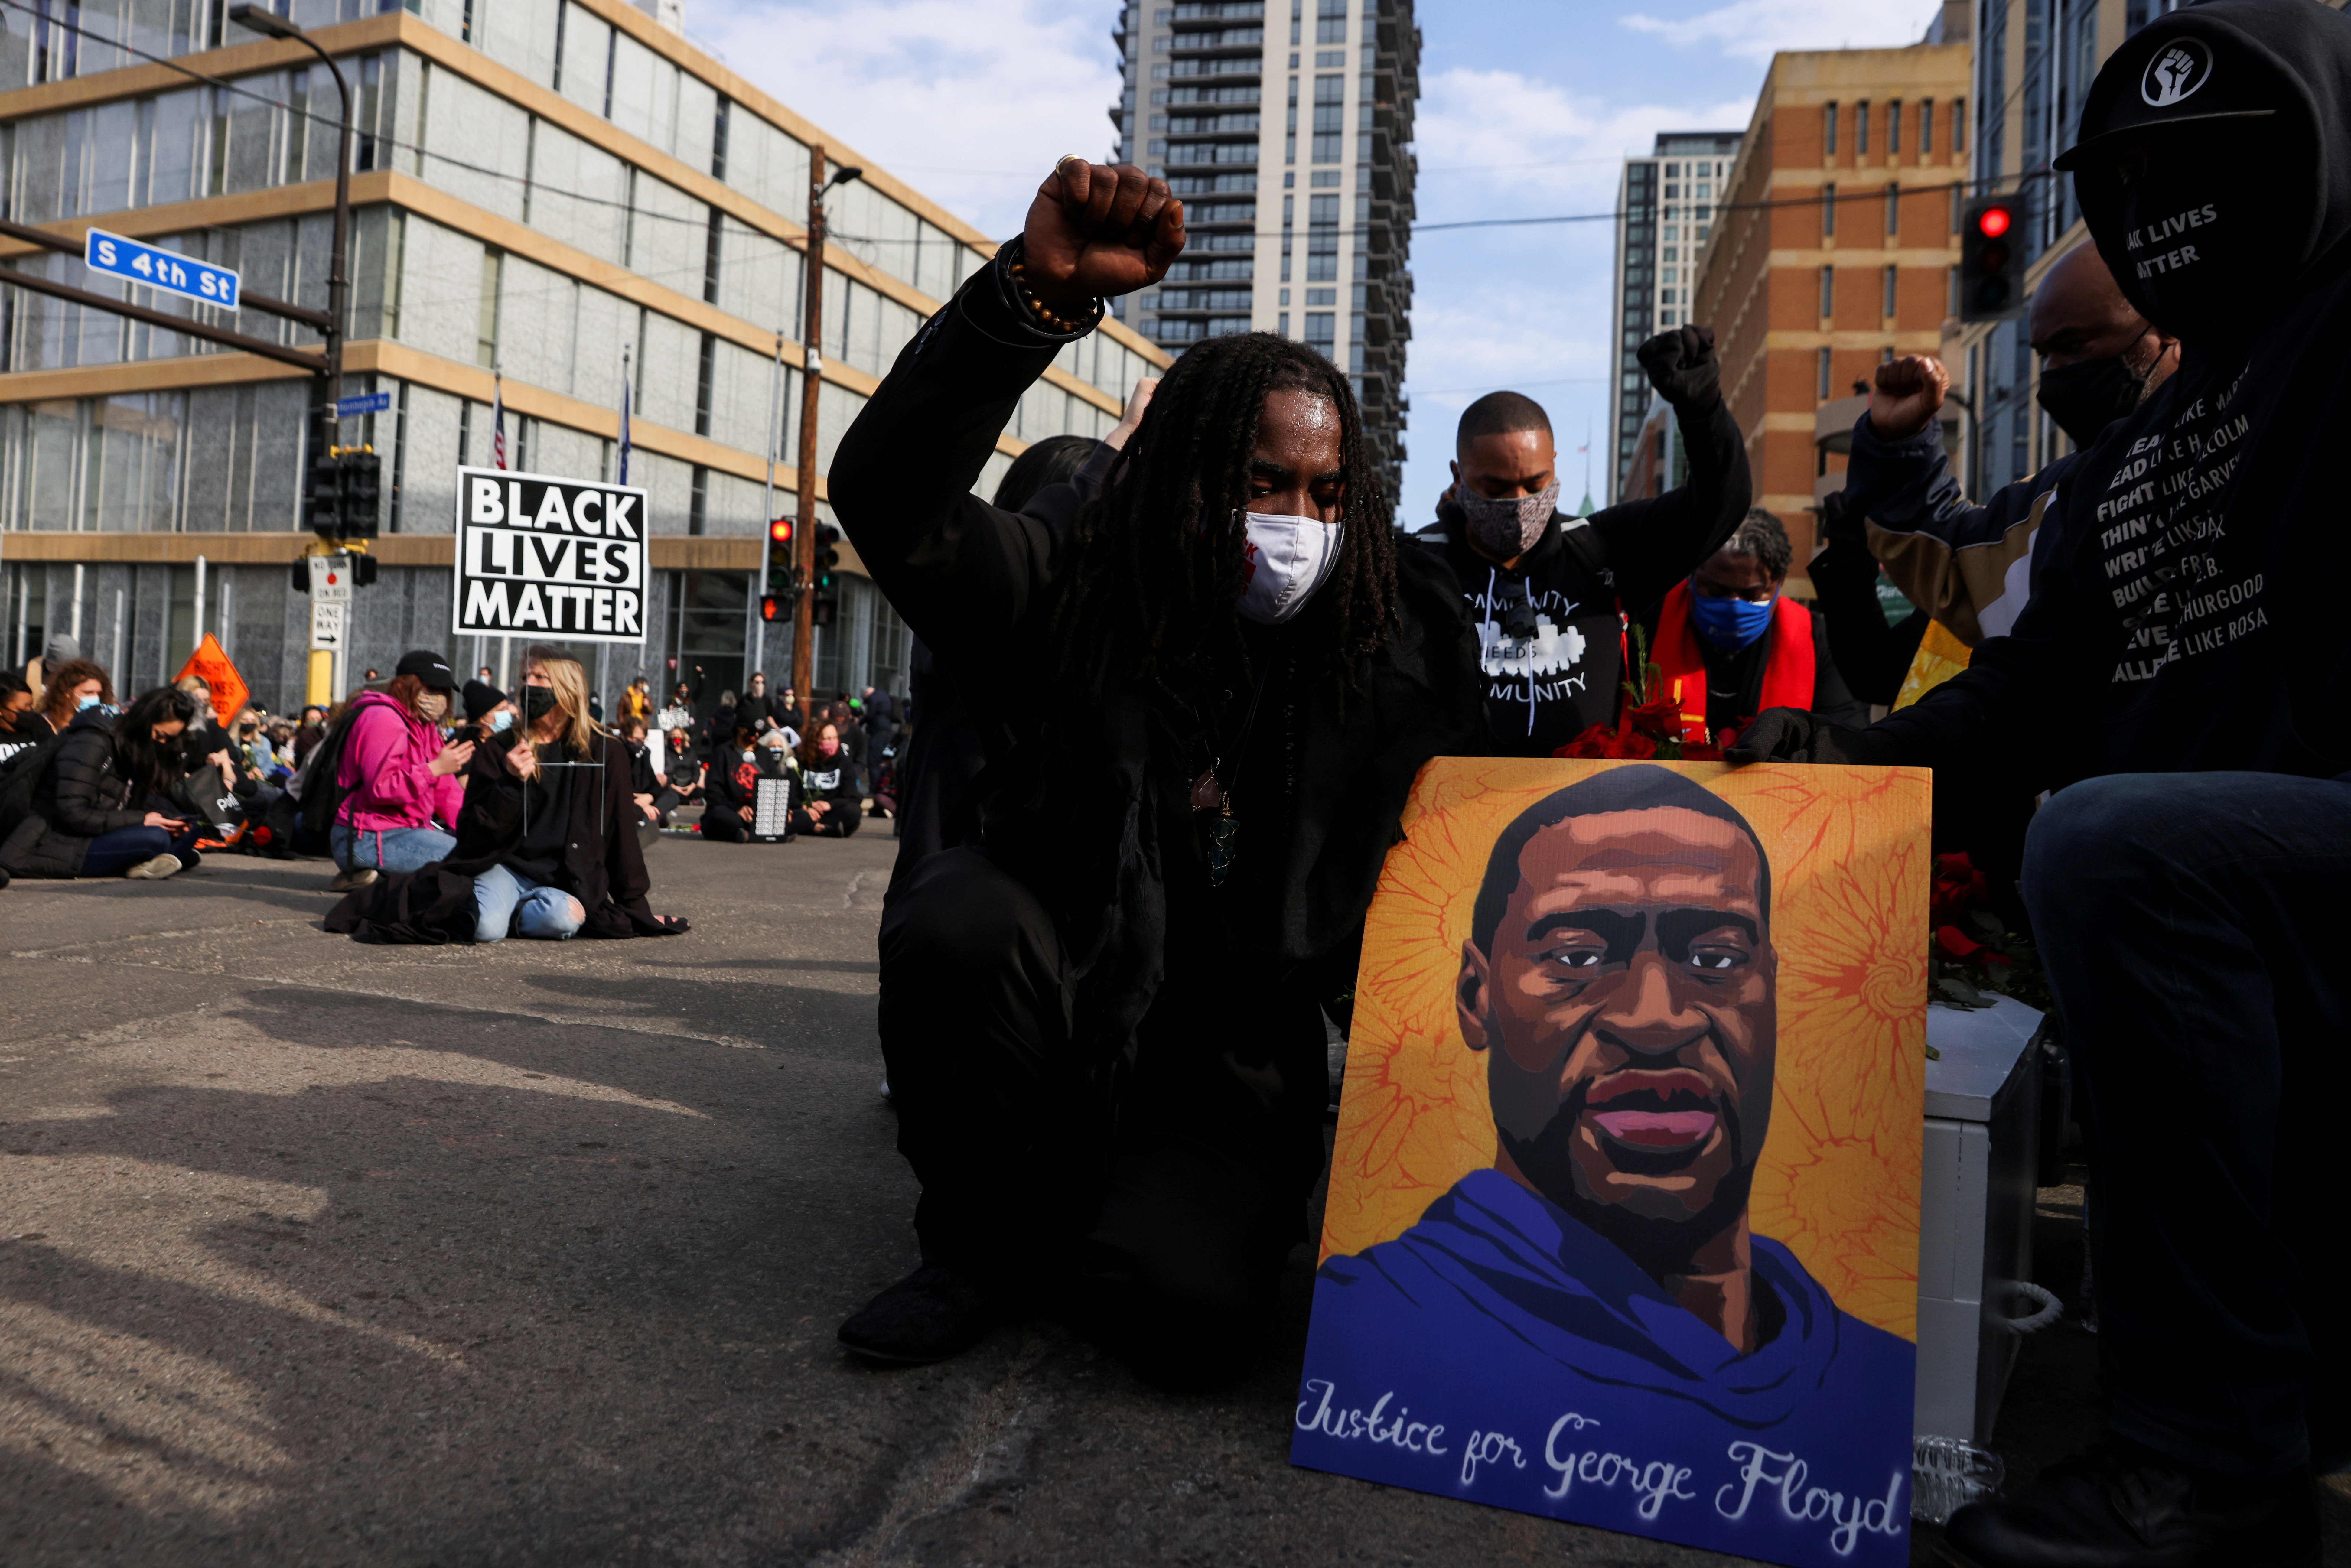 People take part in a rally the day before jury selection is scheduled to begin for the trial of former Minneapolis policeman Derek Chauvin, who is accused of killing George Floyd, in Minneapolis, Minnesota, U.S. March 7, 2021. REUTERS/Leah Millis REFILE - CORRECTING INFORMATION - RC2L6M9LA4PF